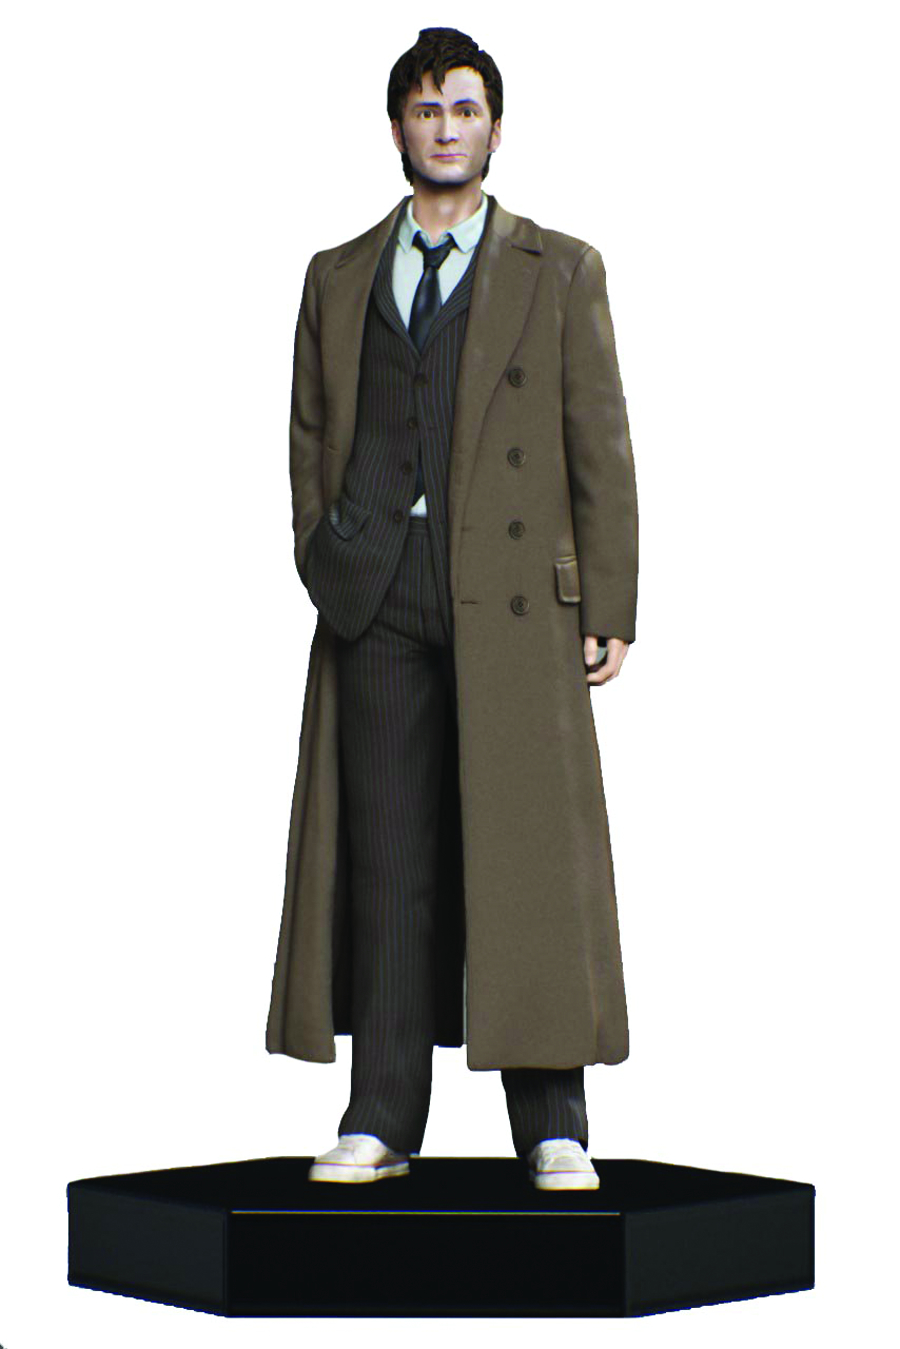 DOCTOR WHO FIG COLL #08 10TH DOCTOR